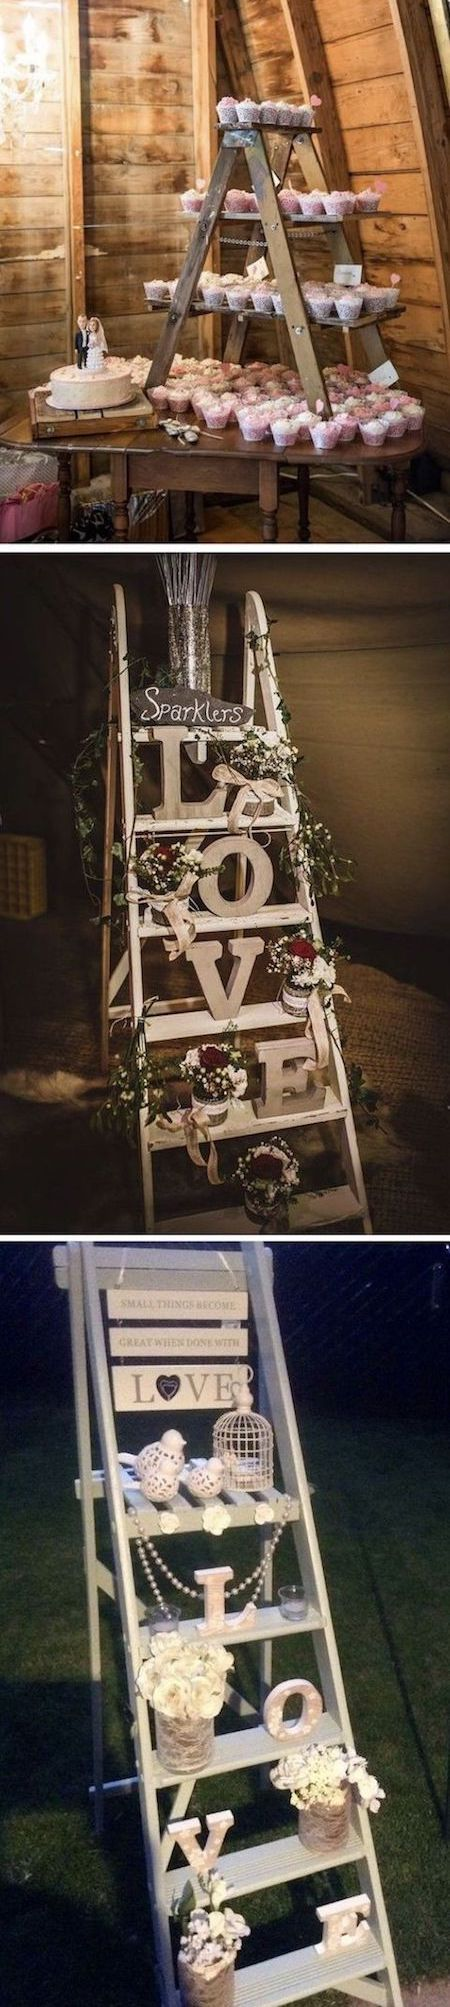 If your wedding budget is a bit tight, consider decorating with ladders as they are both cost-effective and their look totally rocks!